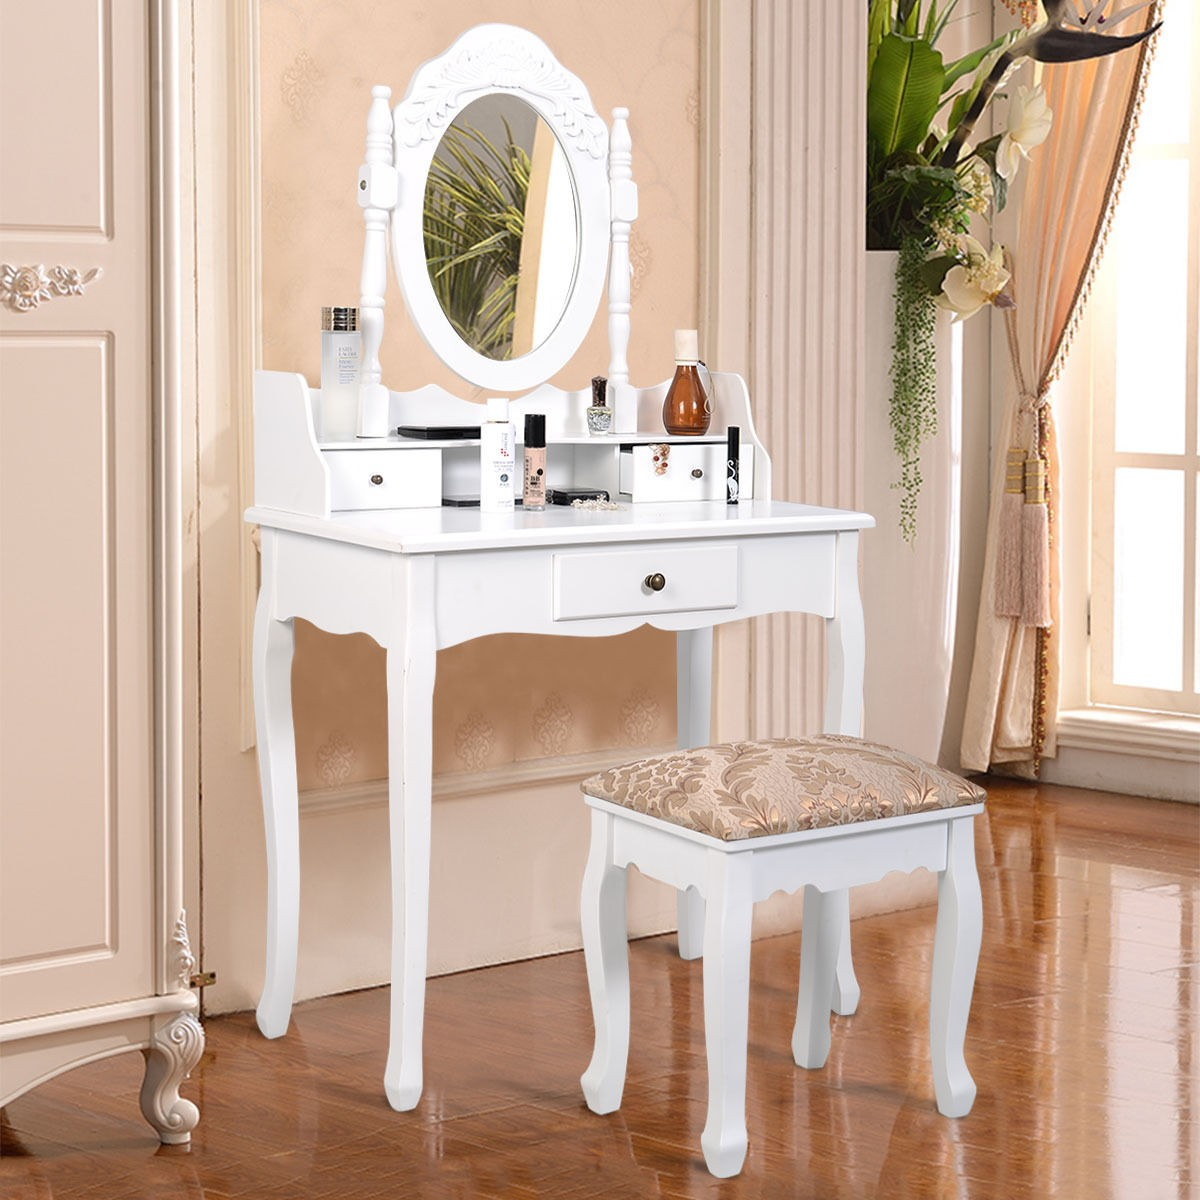 Surprising Vanity Table Jewelry Makeup Desk Bench Dresser W Stool 3 Drawer White Andrewgaddart Wooden Chair Designs For Living Room Andrewgaddartcom